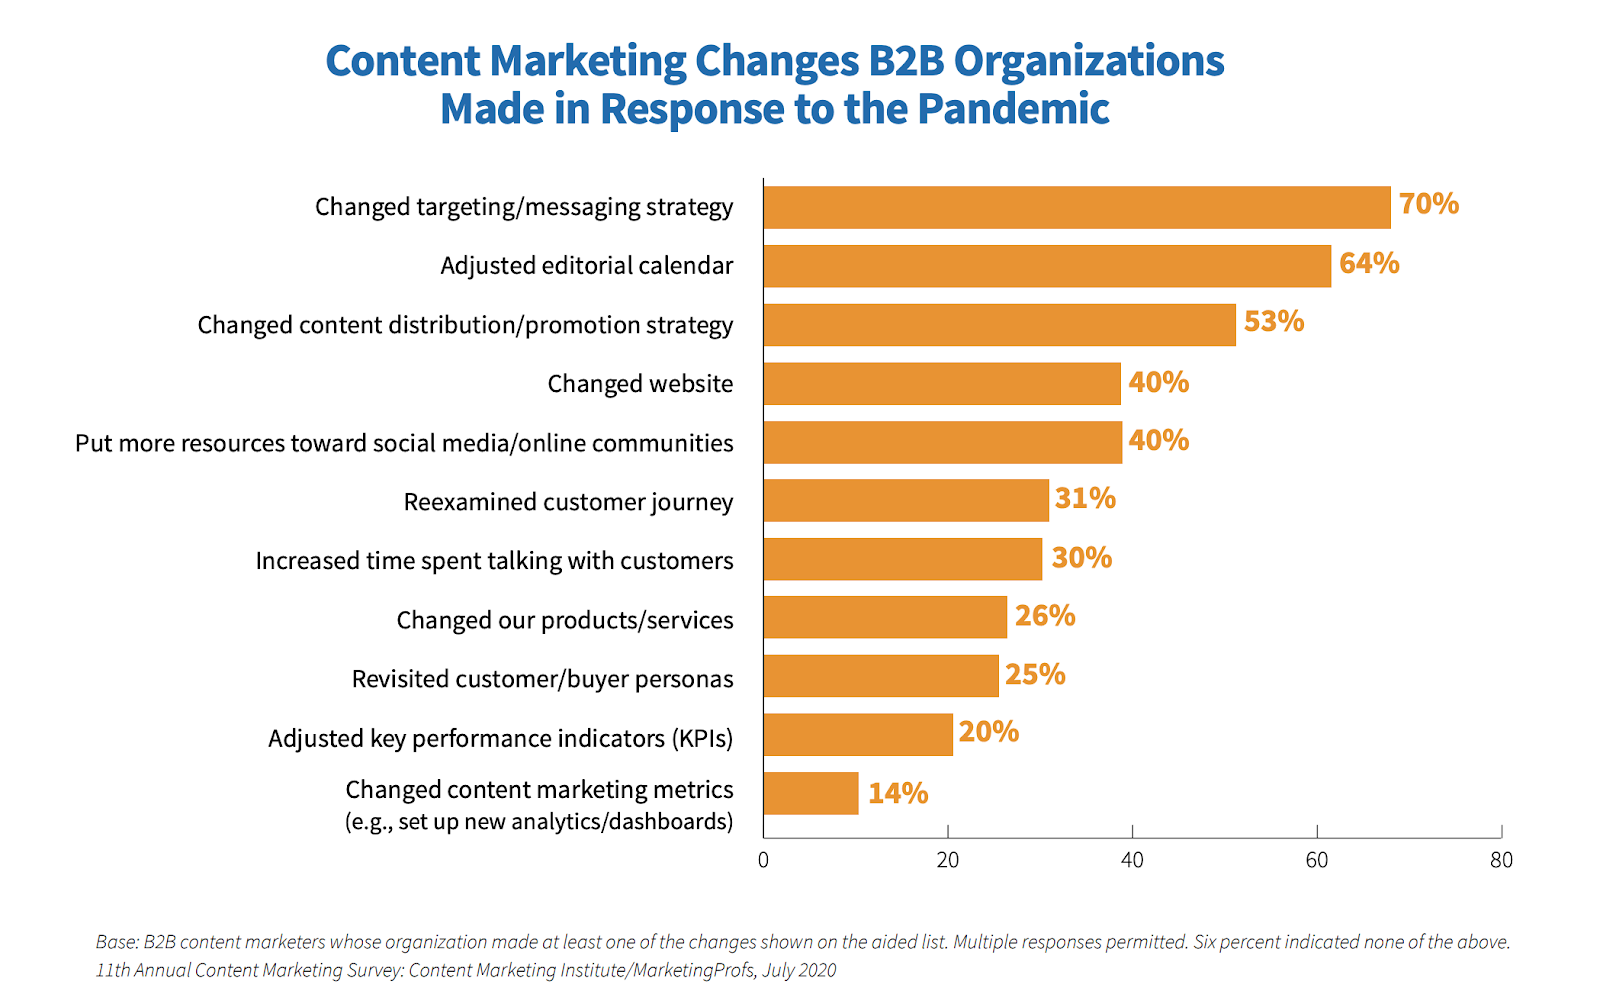 Content marketing changes B2B Organizations made in response to the pandemic